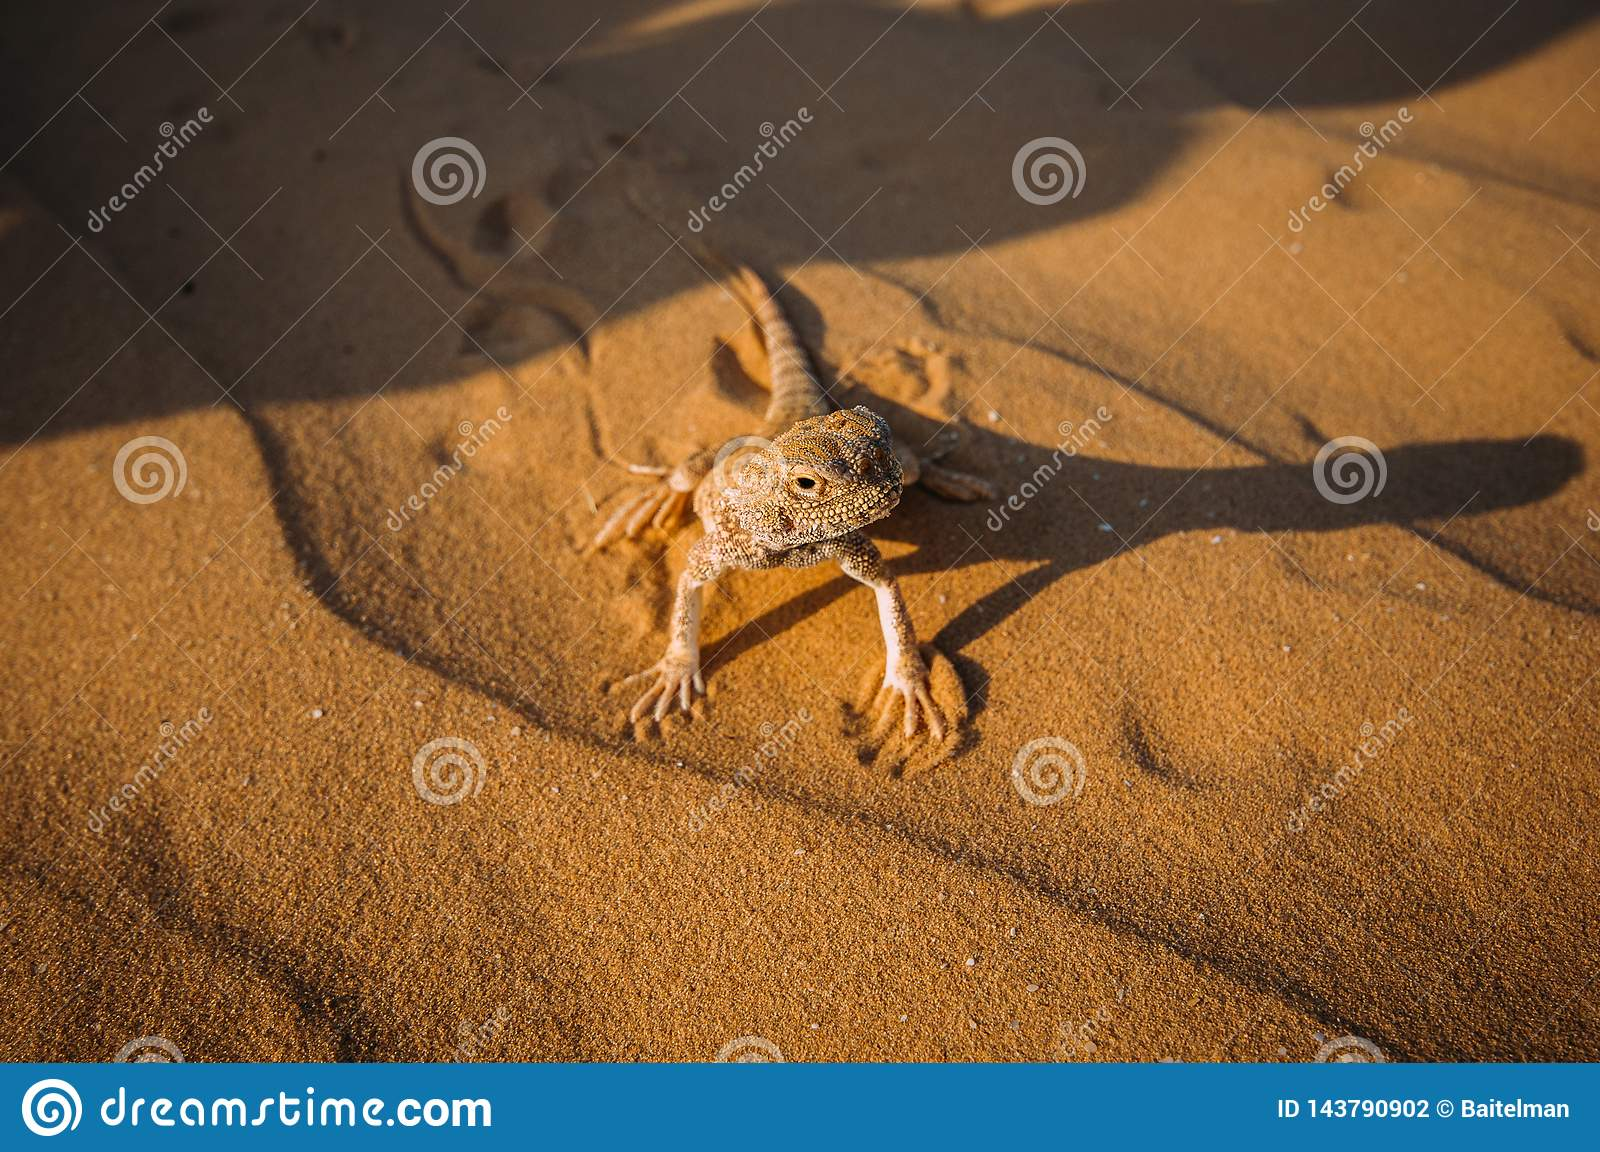 Lizard in the desert on the yellow sand